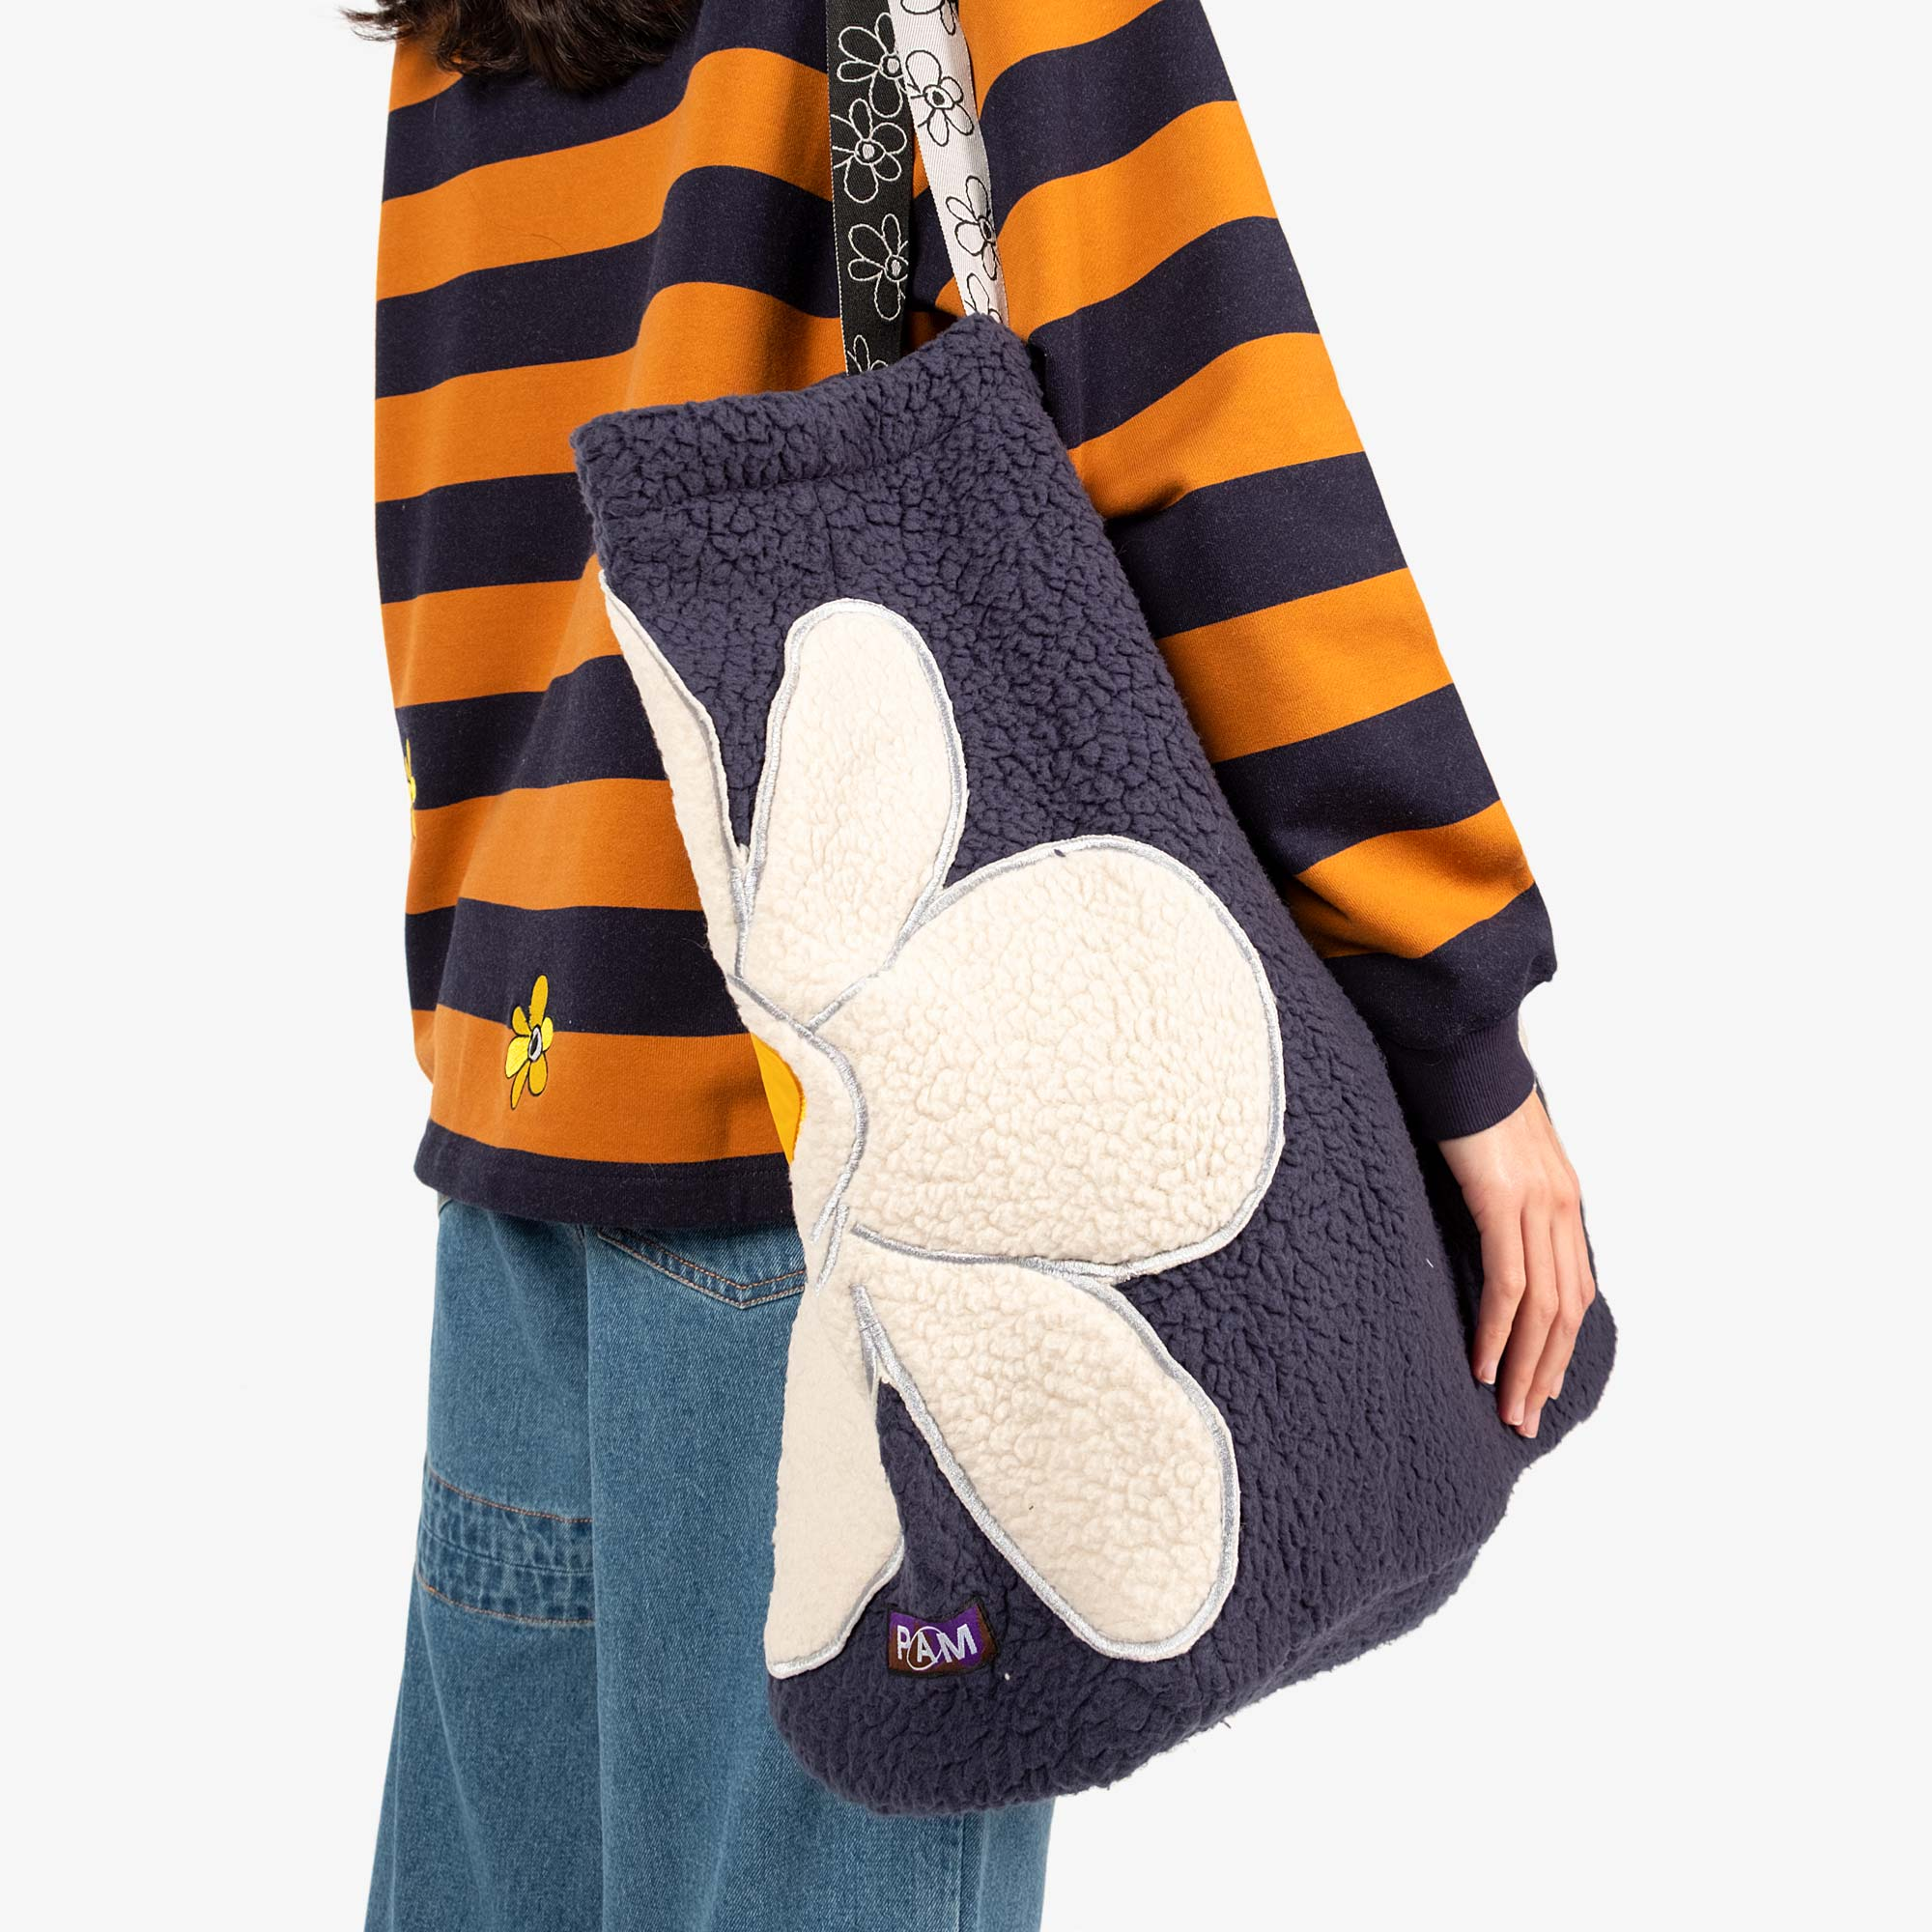 Perks and Mini (P.A.M.) Popping Gestures Recycled Shearling Tote Bag - Navy Fog 4